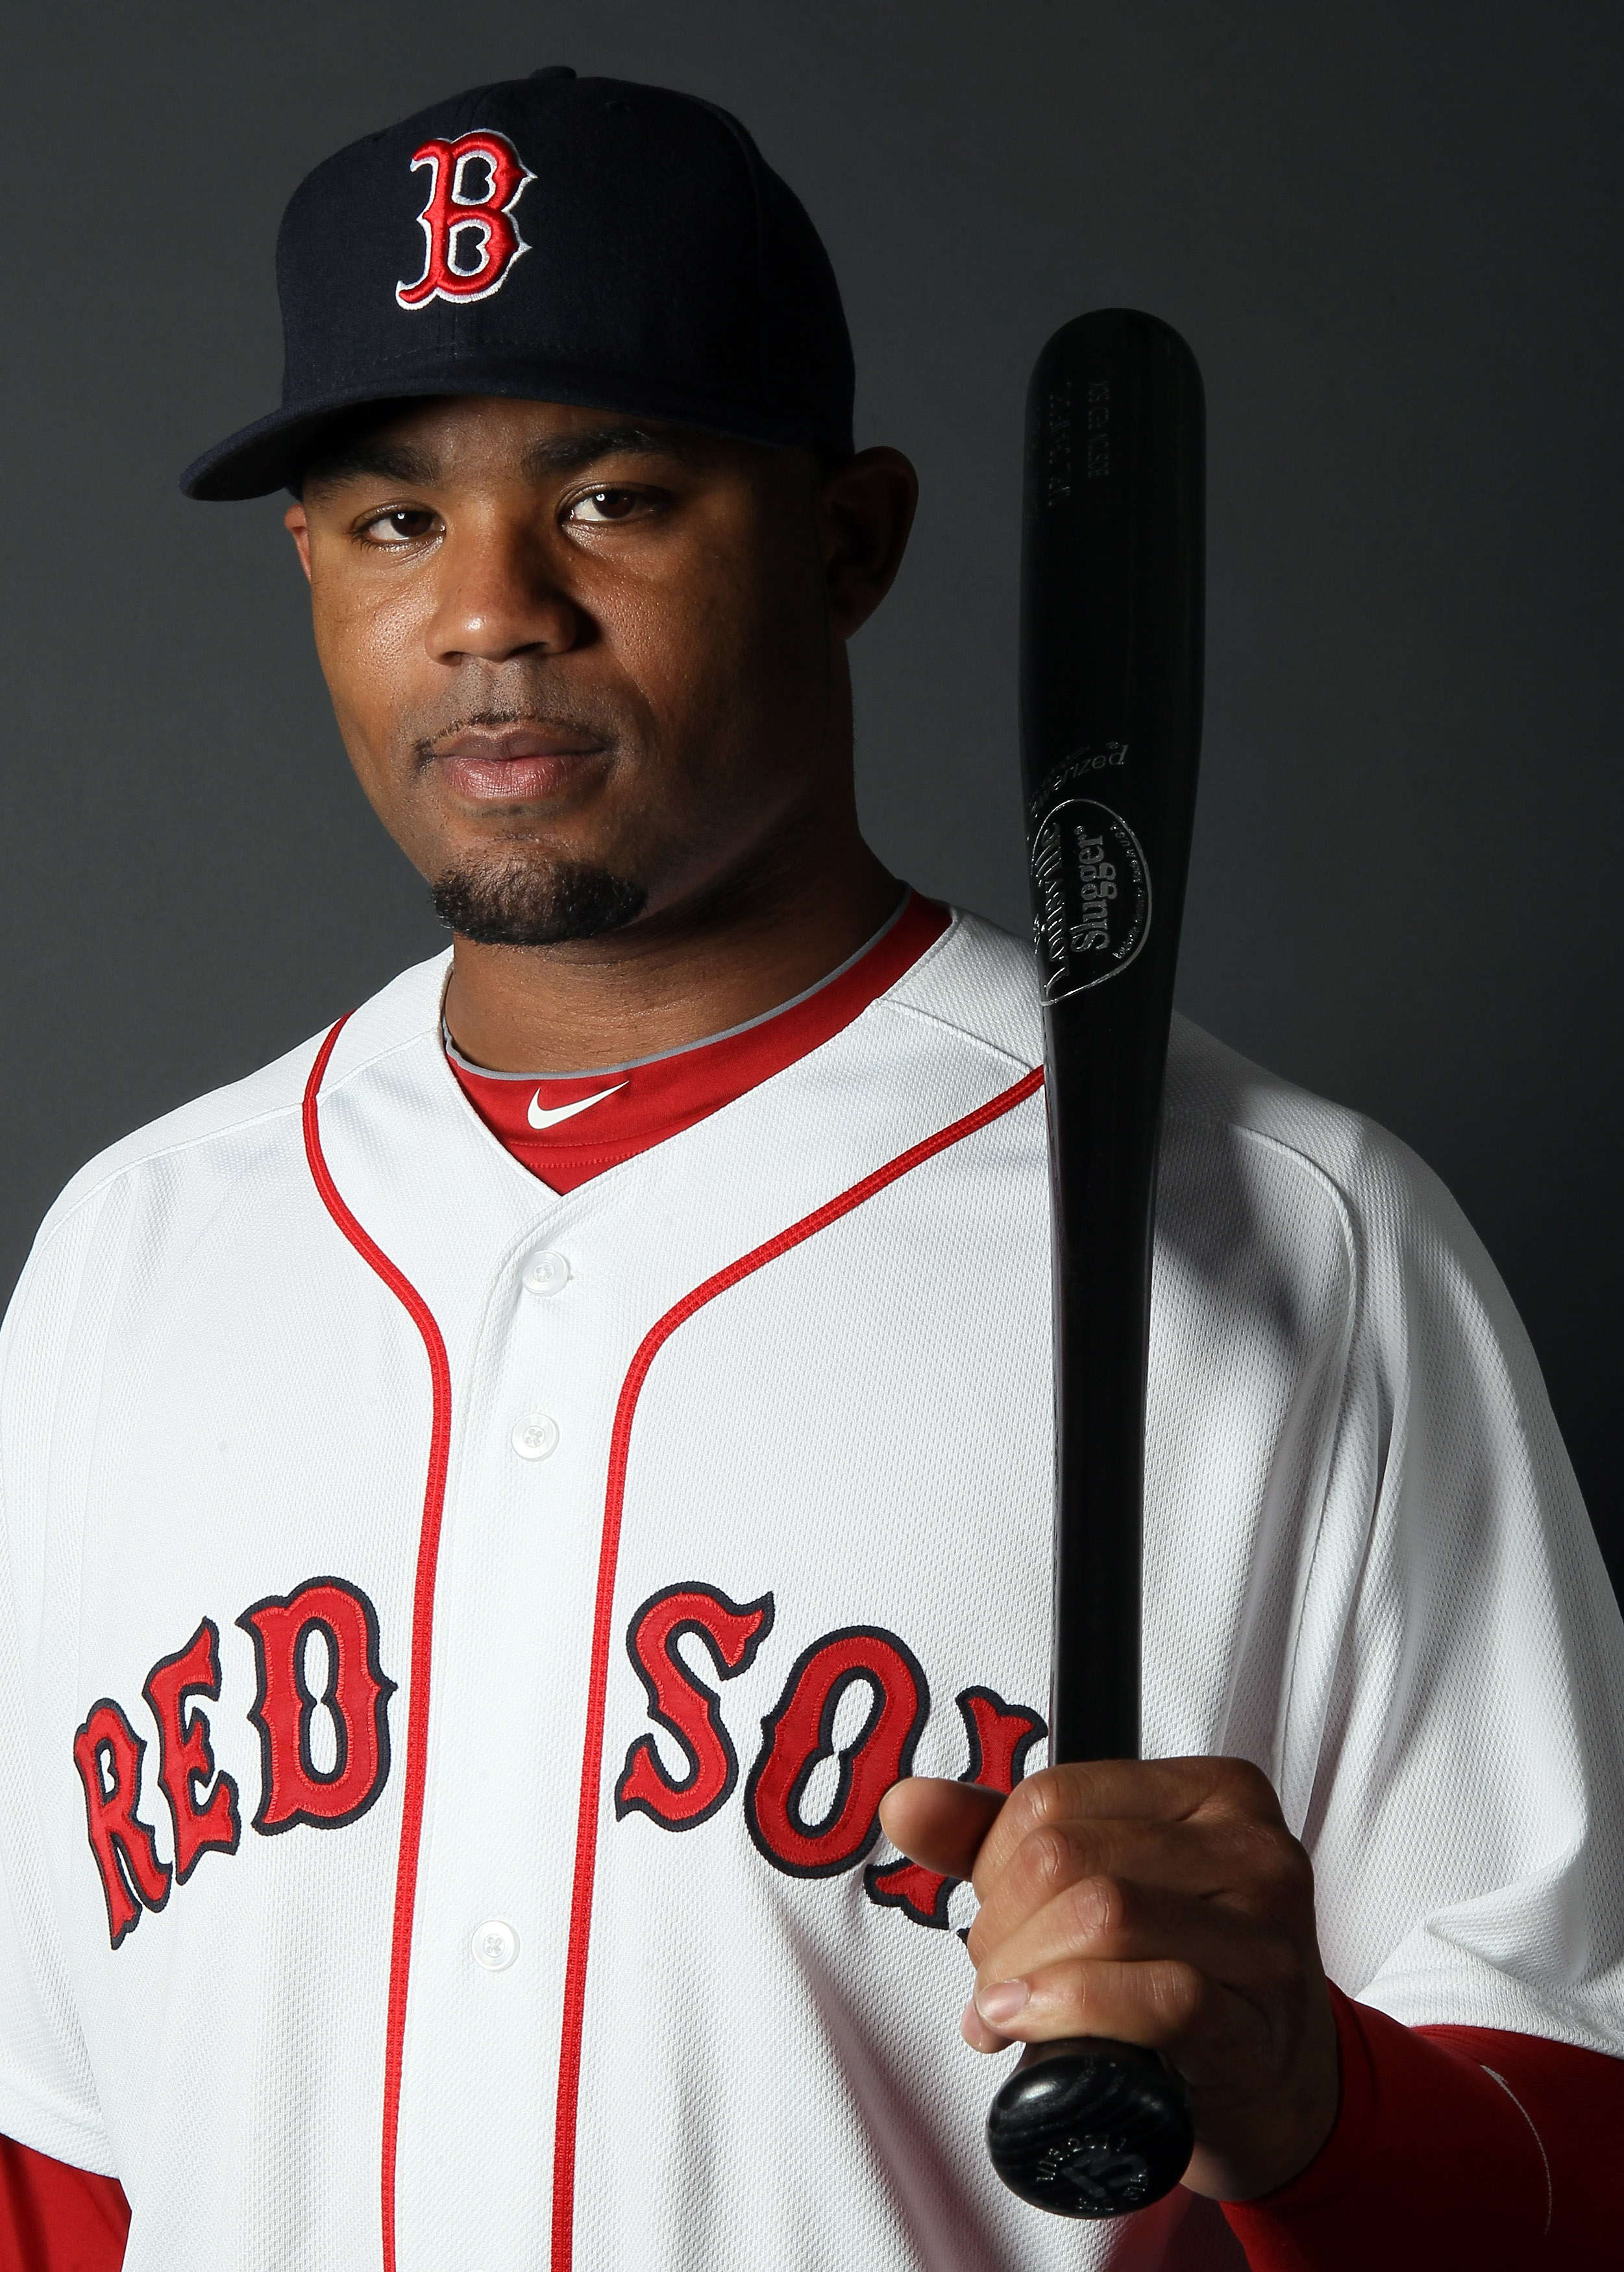 FT. MYERS, FL - FEBRUARY 20:  :  :  :  Carl Crawford #13 of the Boston Red Sox poses for a portrait during the Boston Red Sox Photo Day on February 20, 2011 at the Boston Red Sox Player Development Complex in Ft. Myers, Florida  (Photo by Elsa/Getty Image